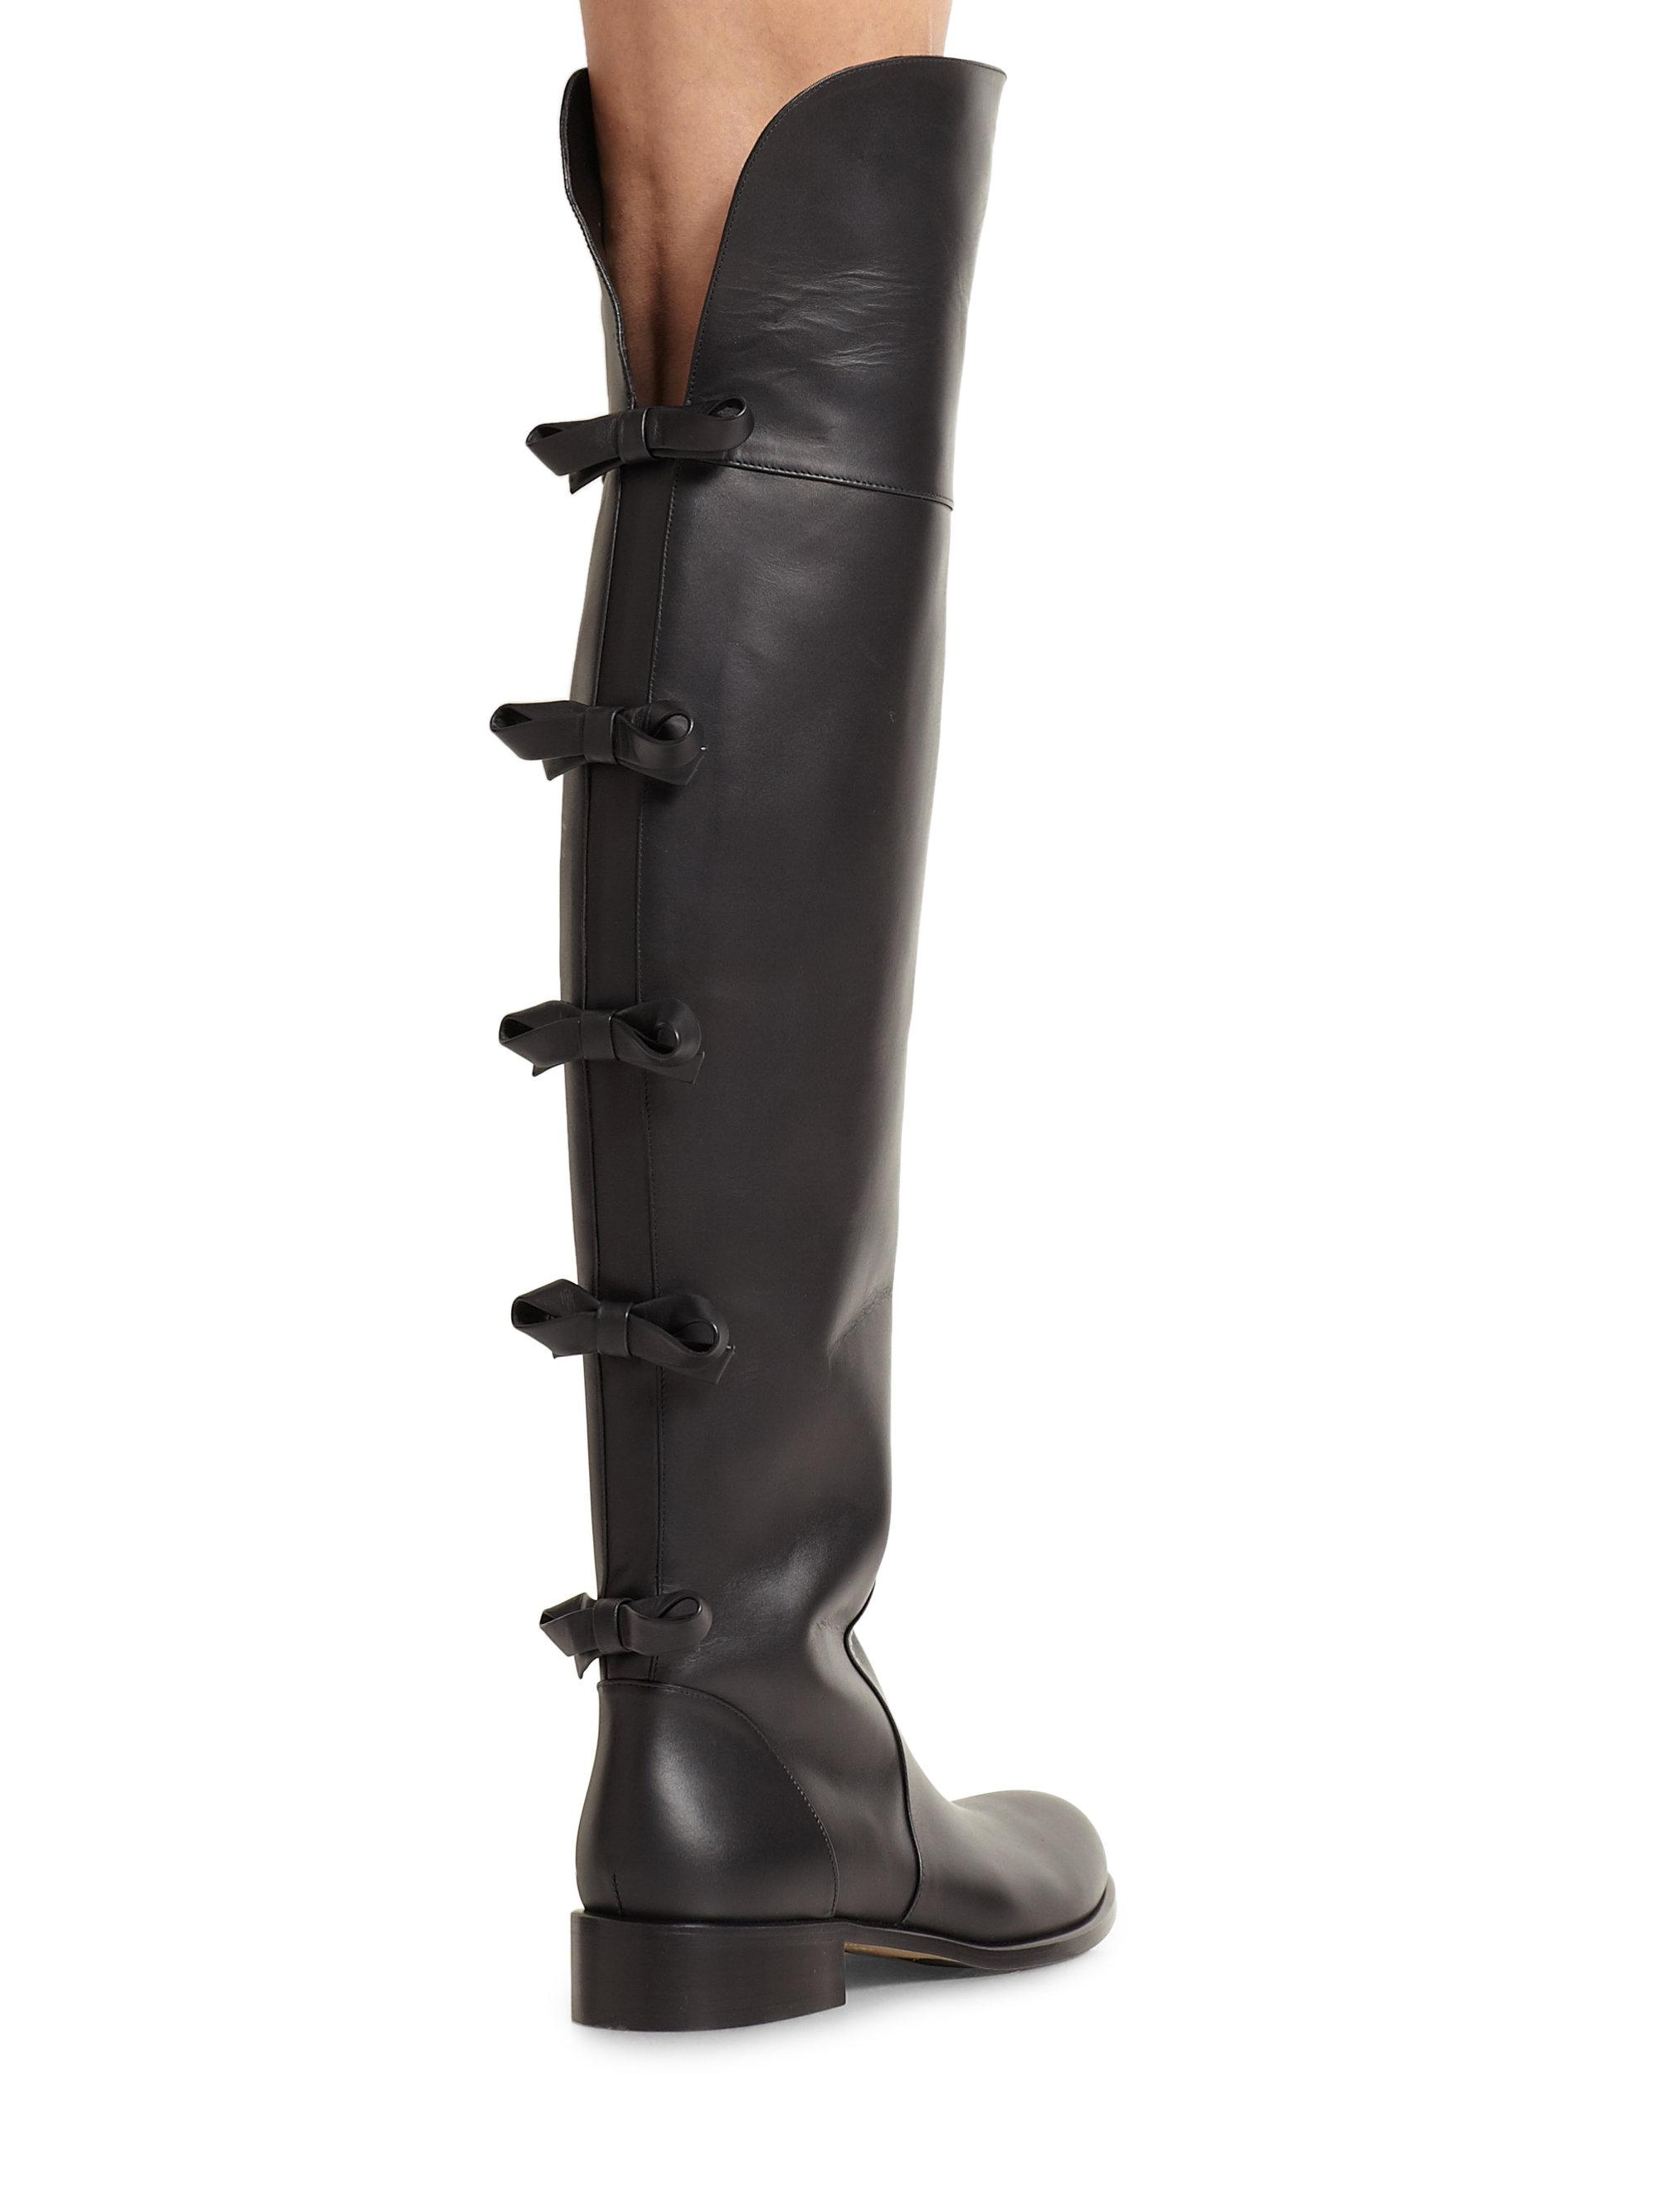 54017a6ff743 Valentino Black Bow Over The Knee Boots Booties Size EU 36 36 36 (Approx.  US 6) Regular (M